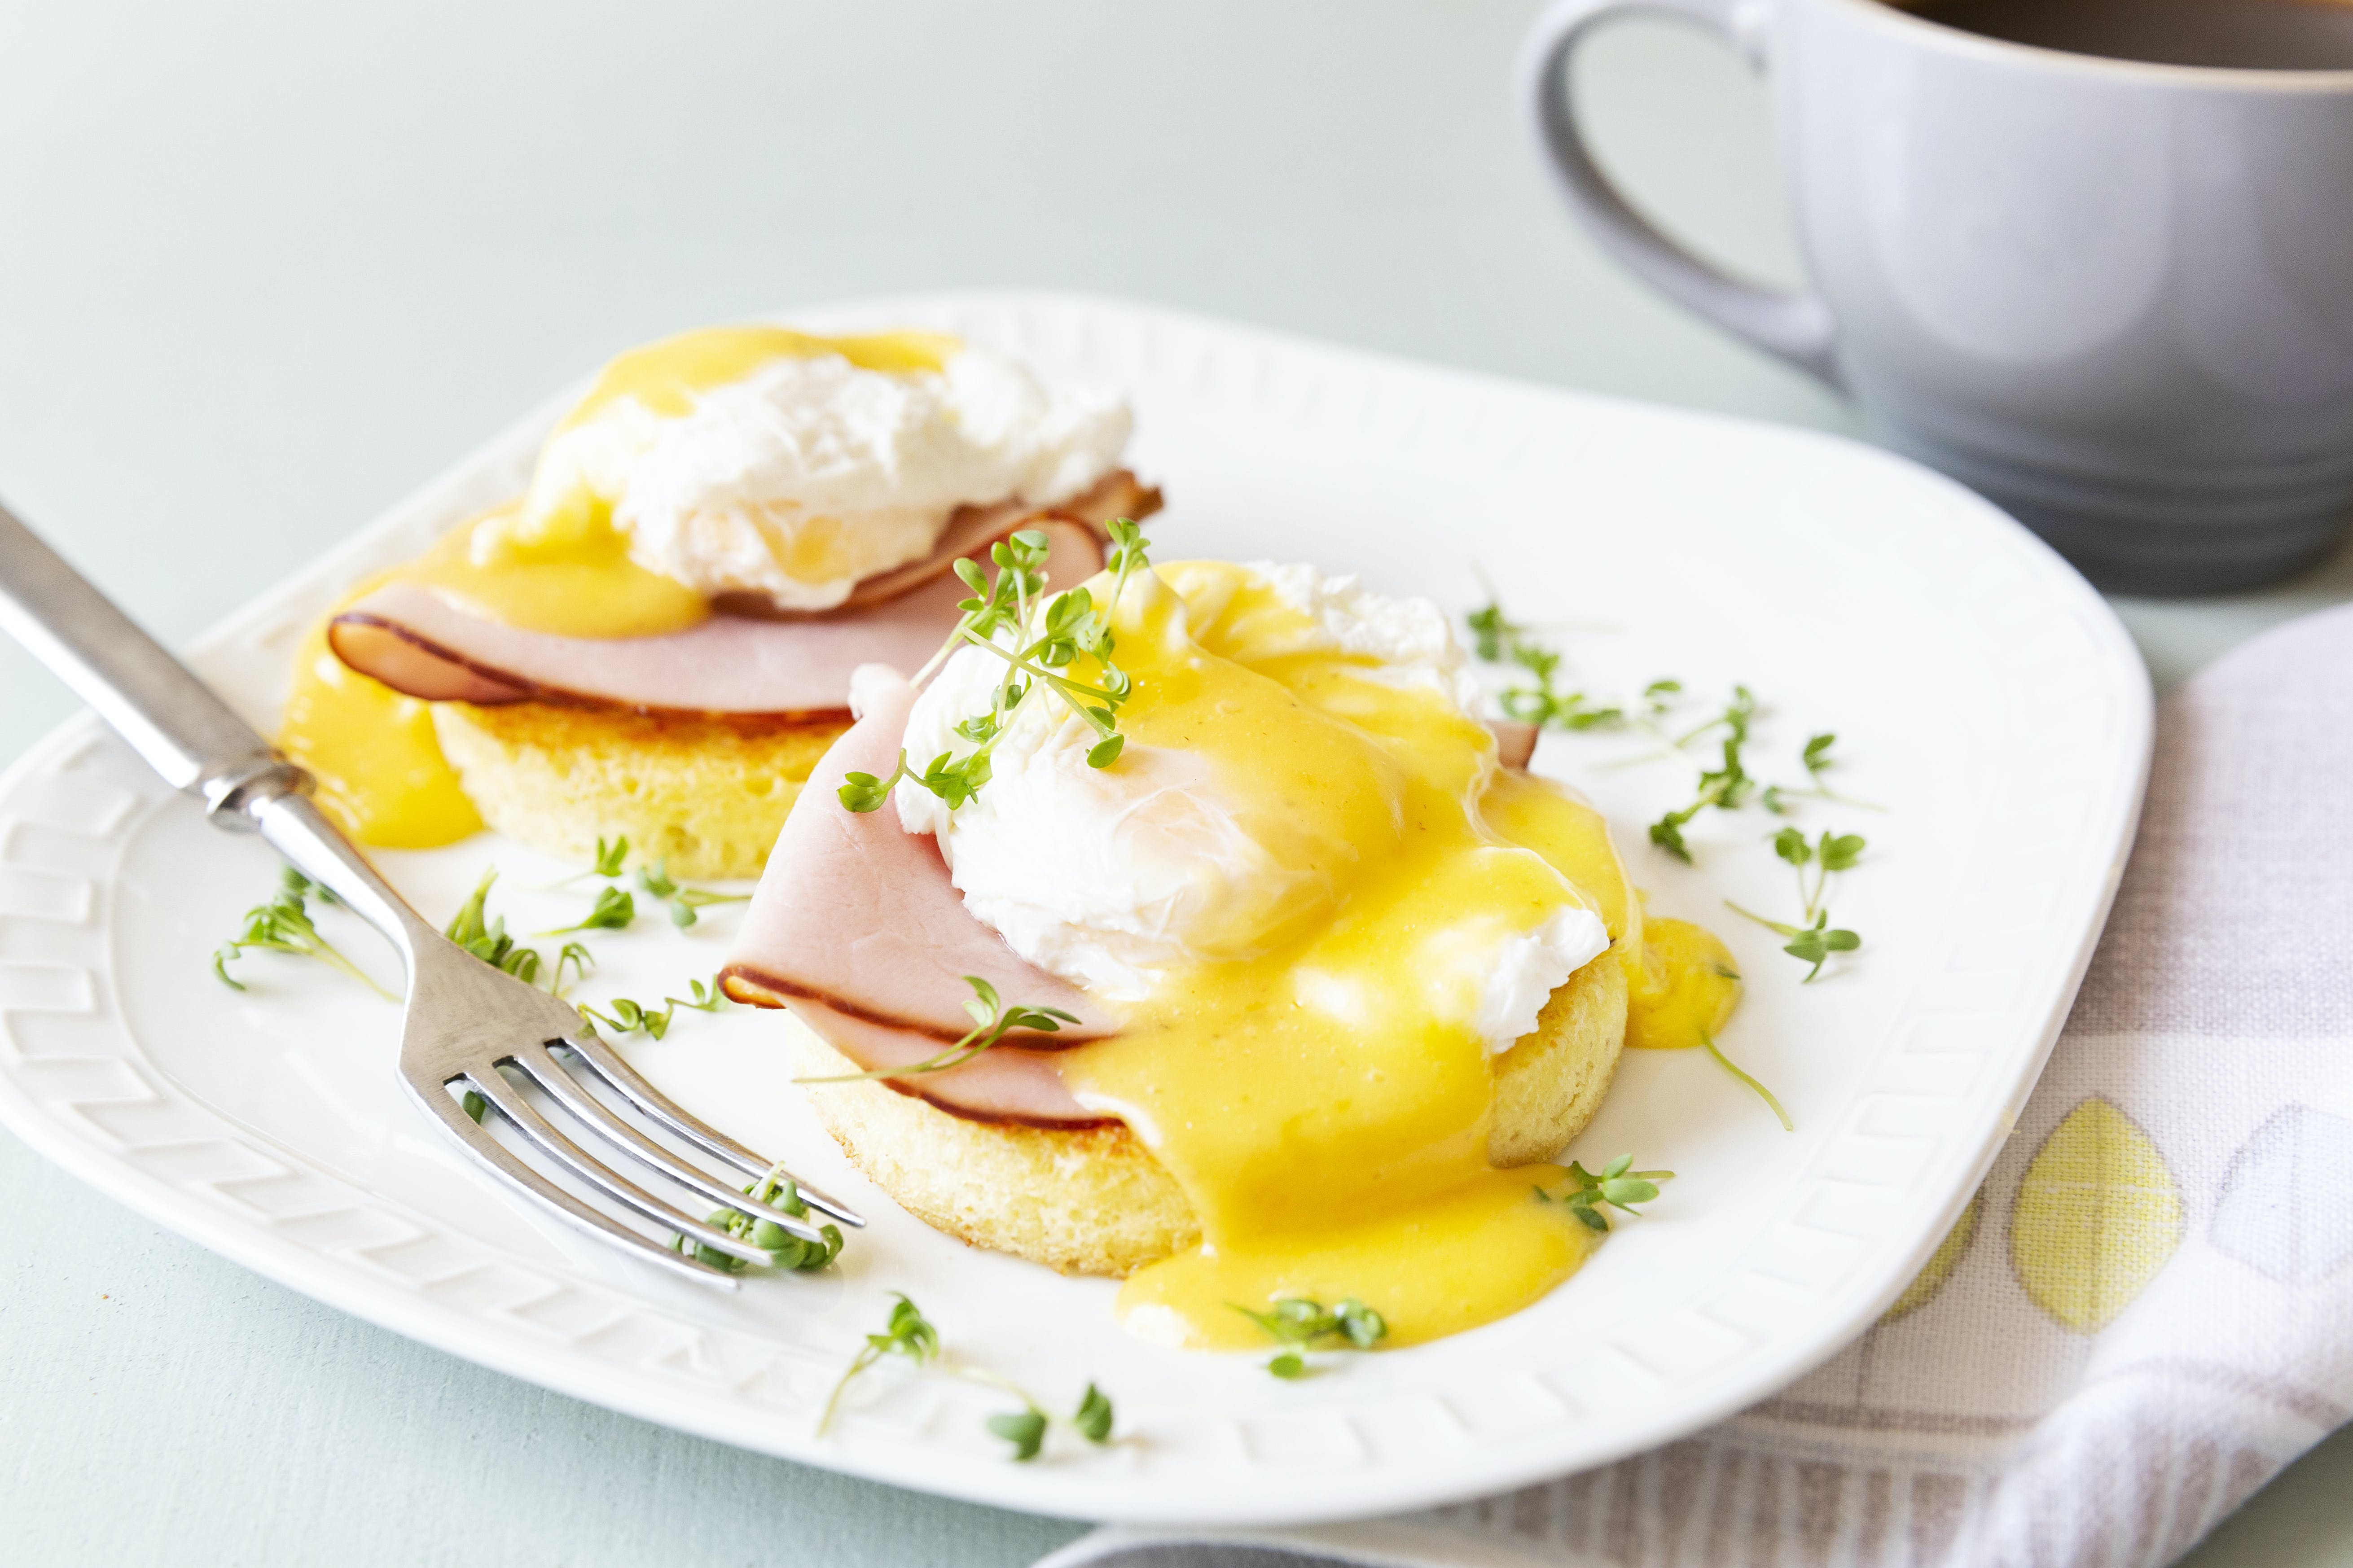 Keto eggs Benedict with mug bread